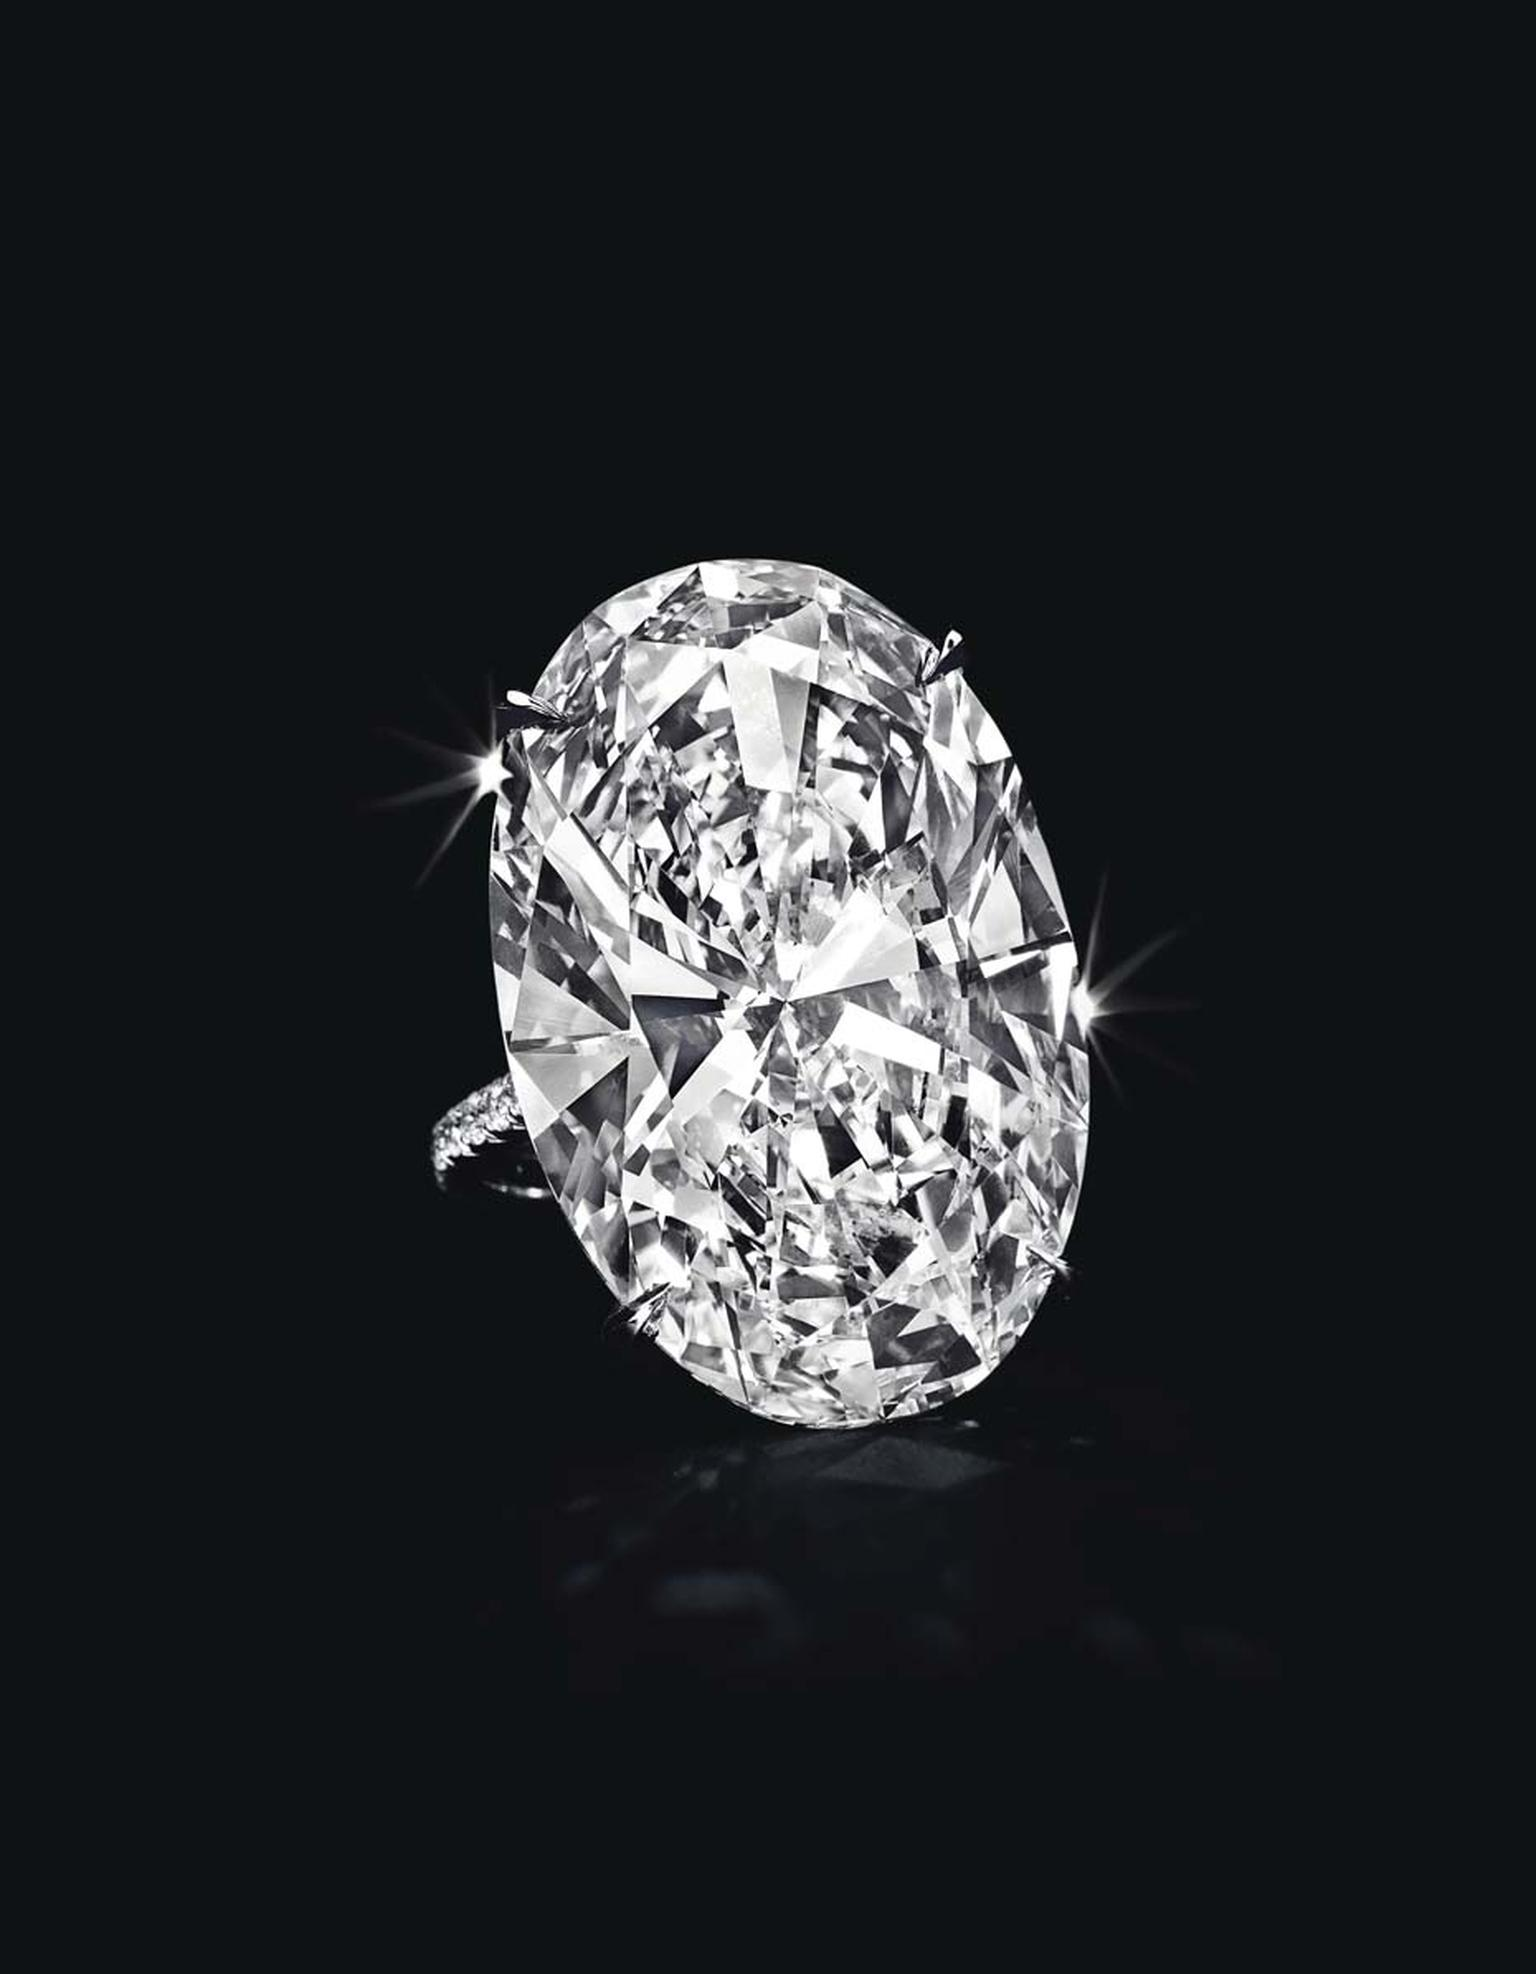 Lot 107, a spectacular diamond and platinum ring, set with an oval-cut diamond weighing approximately 40.43ct, D colour, VVS1 clarity, with excellent polish and excellent symmetry (estimate: $5.8-7.8 million)